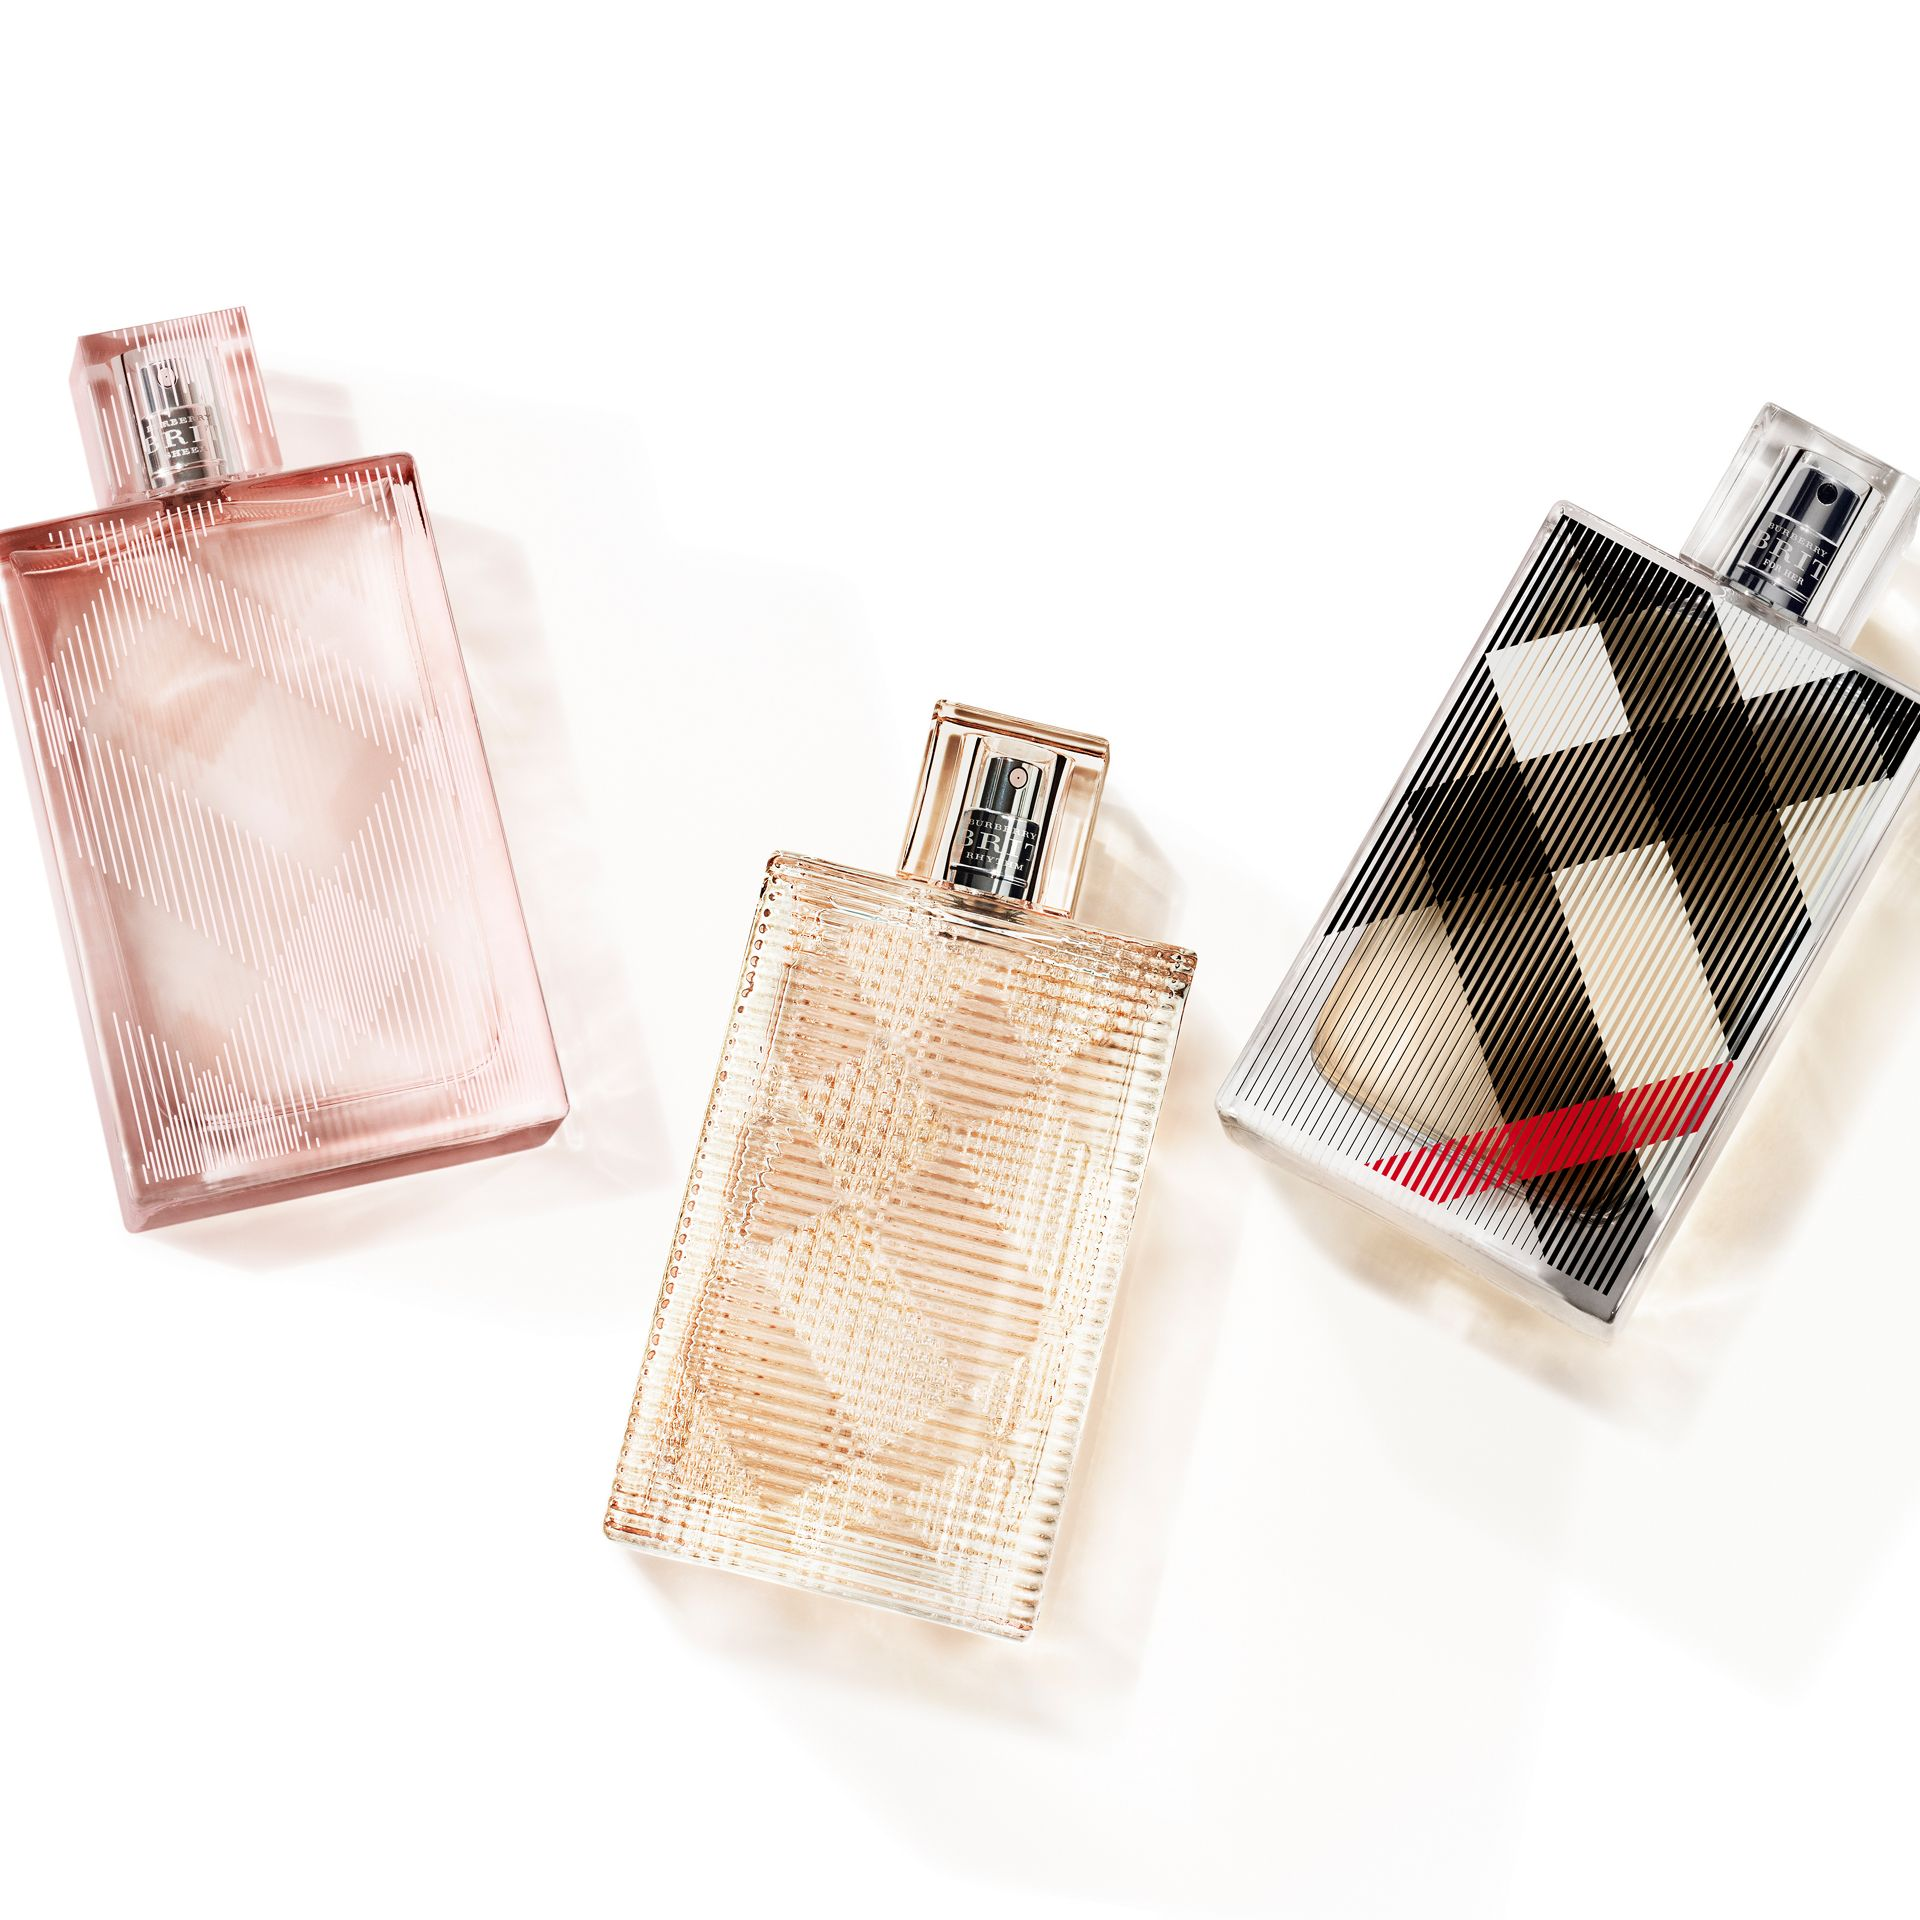 Burberry Brit For Her Eau de Toilette 50ml - Women | Burberry Australia - gallery image 2